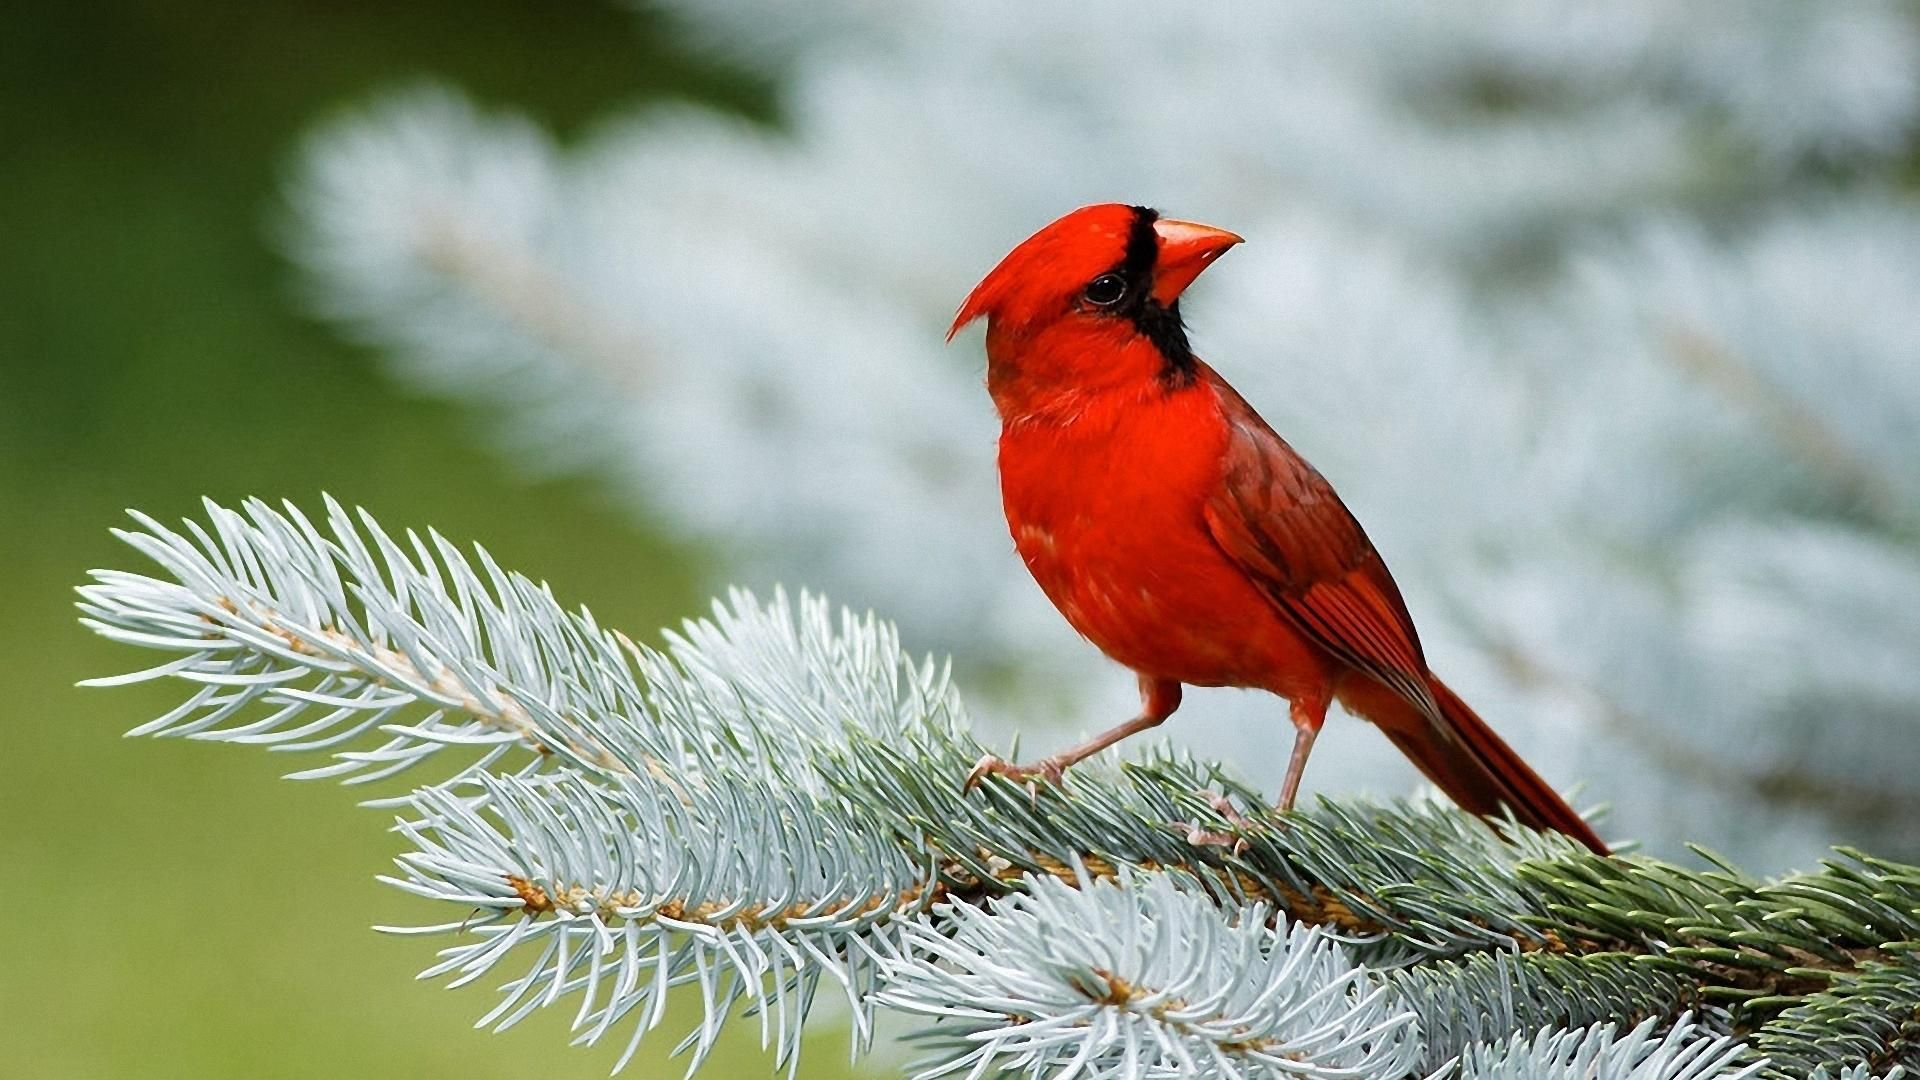 red cardinal birds 1080p hd wallpaper aves